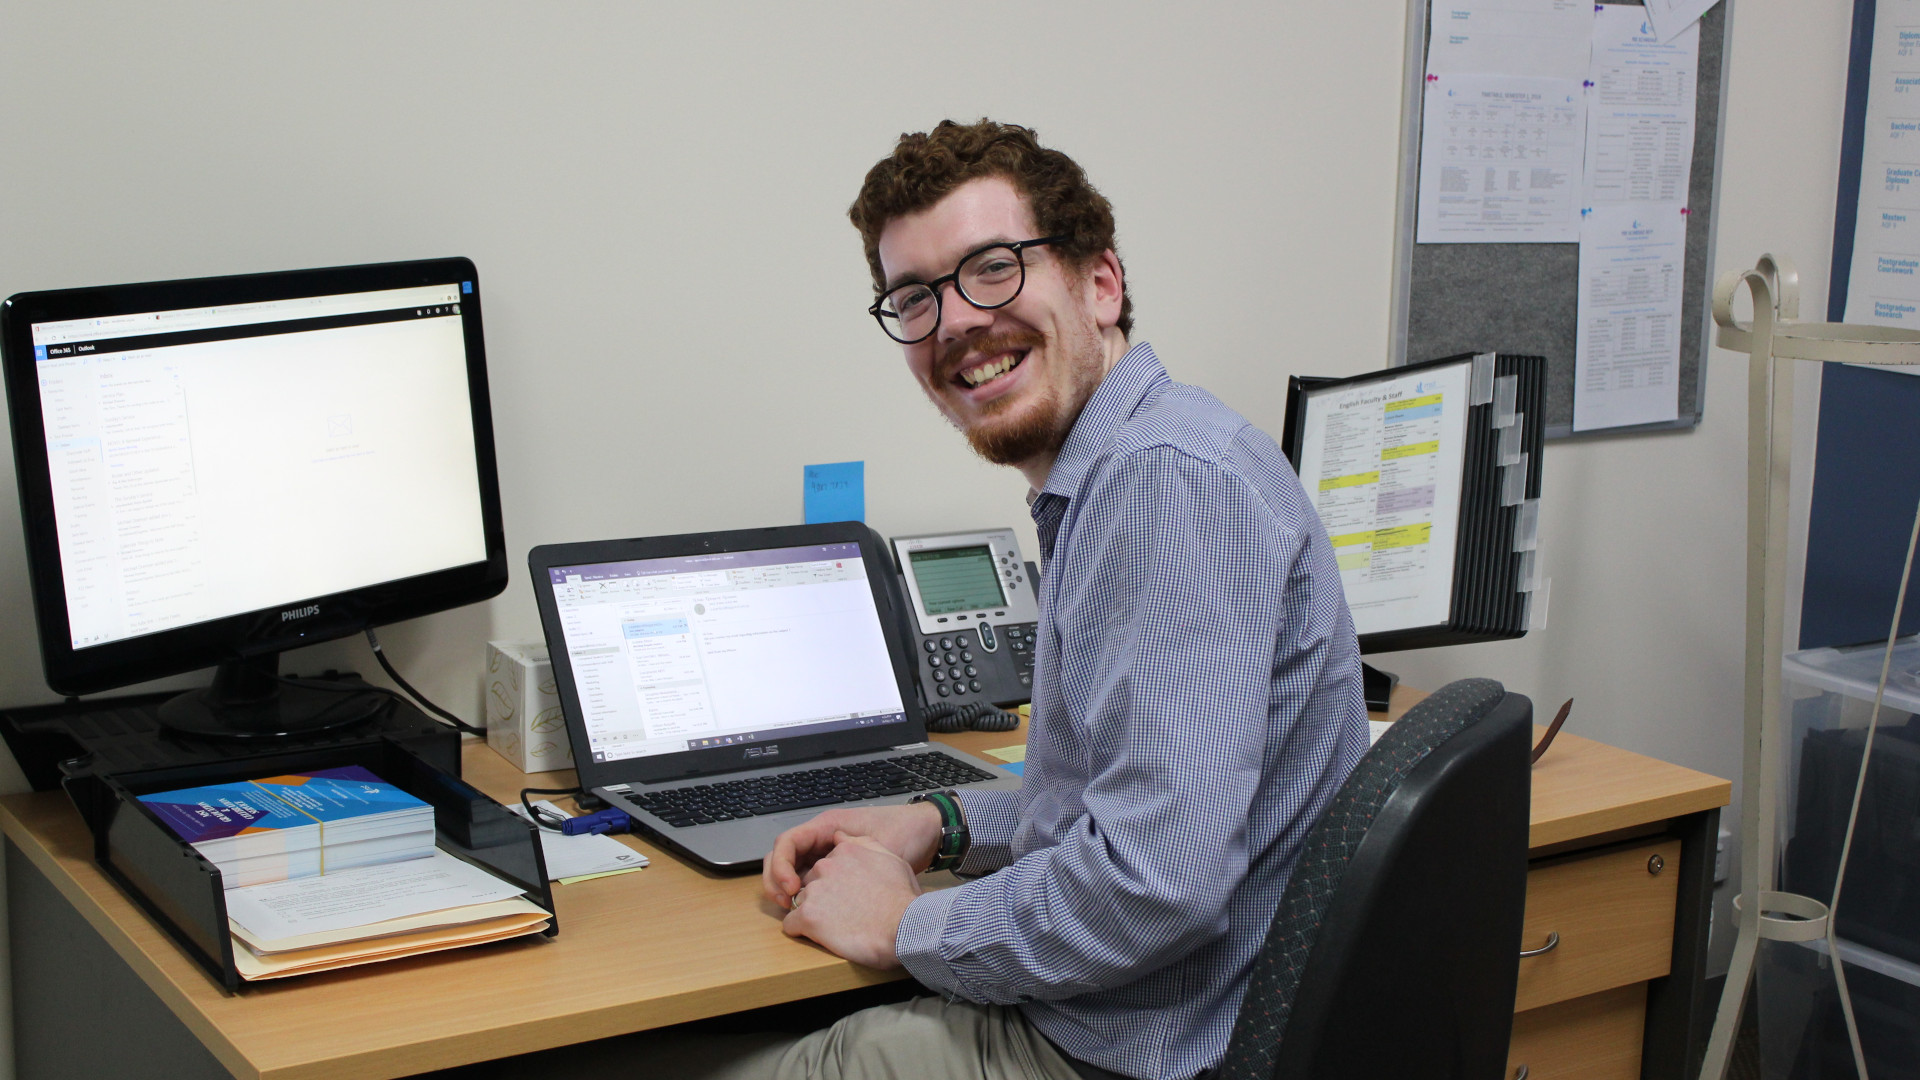 Tom Prowse sitting in his office at a desk